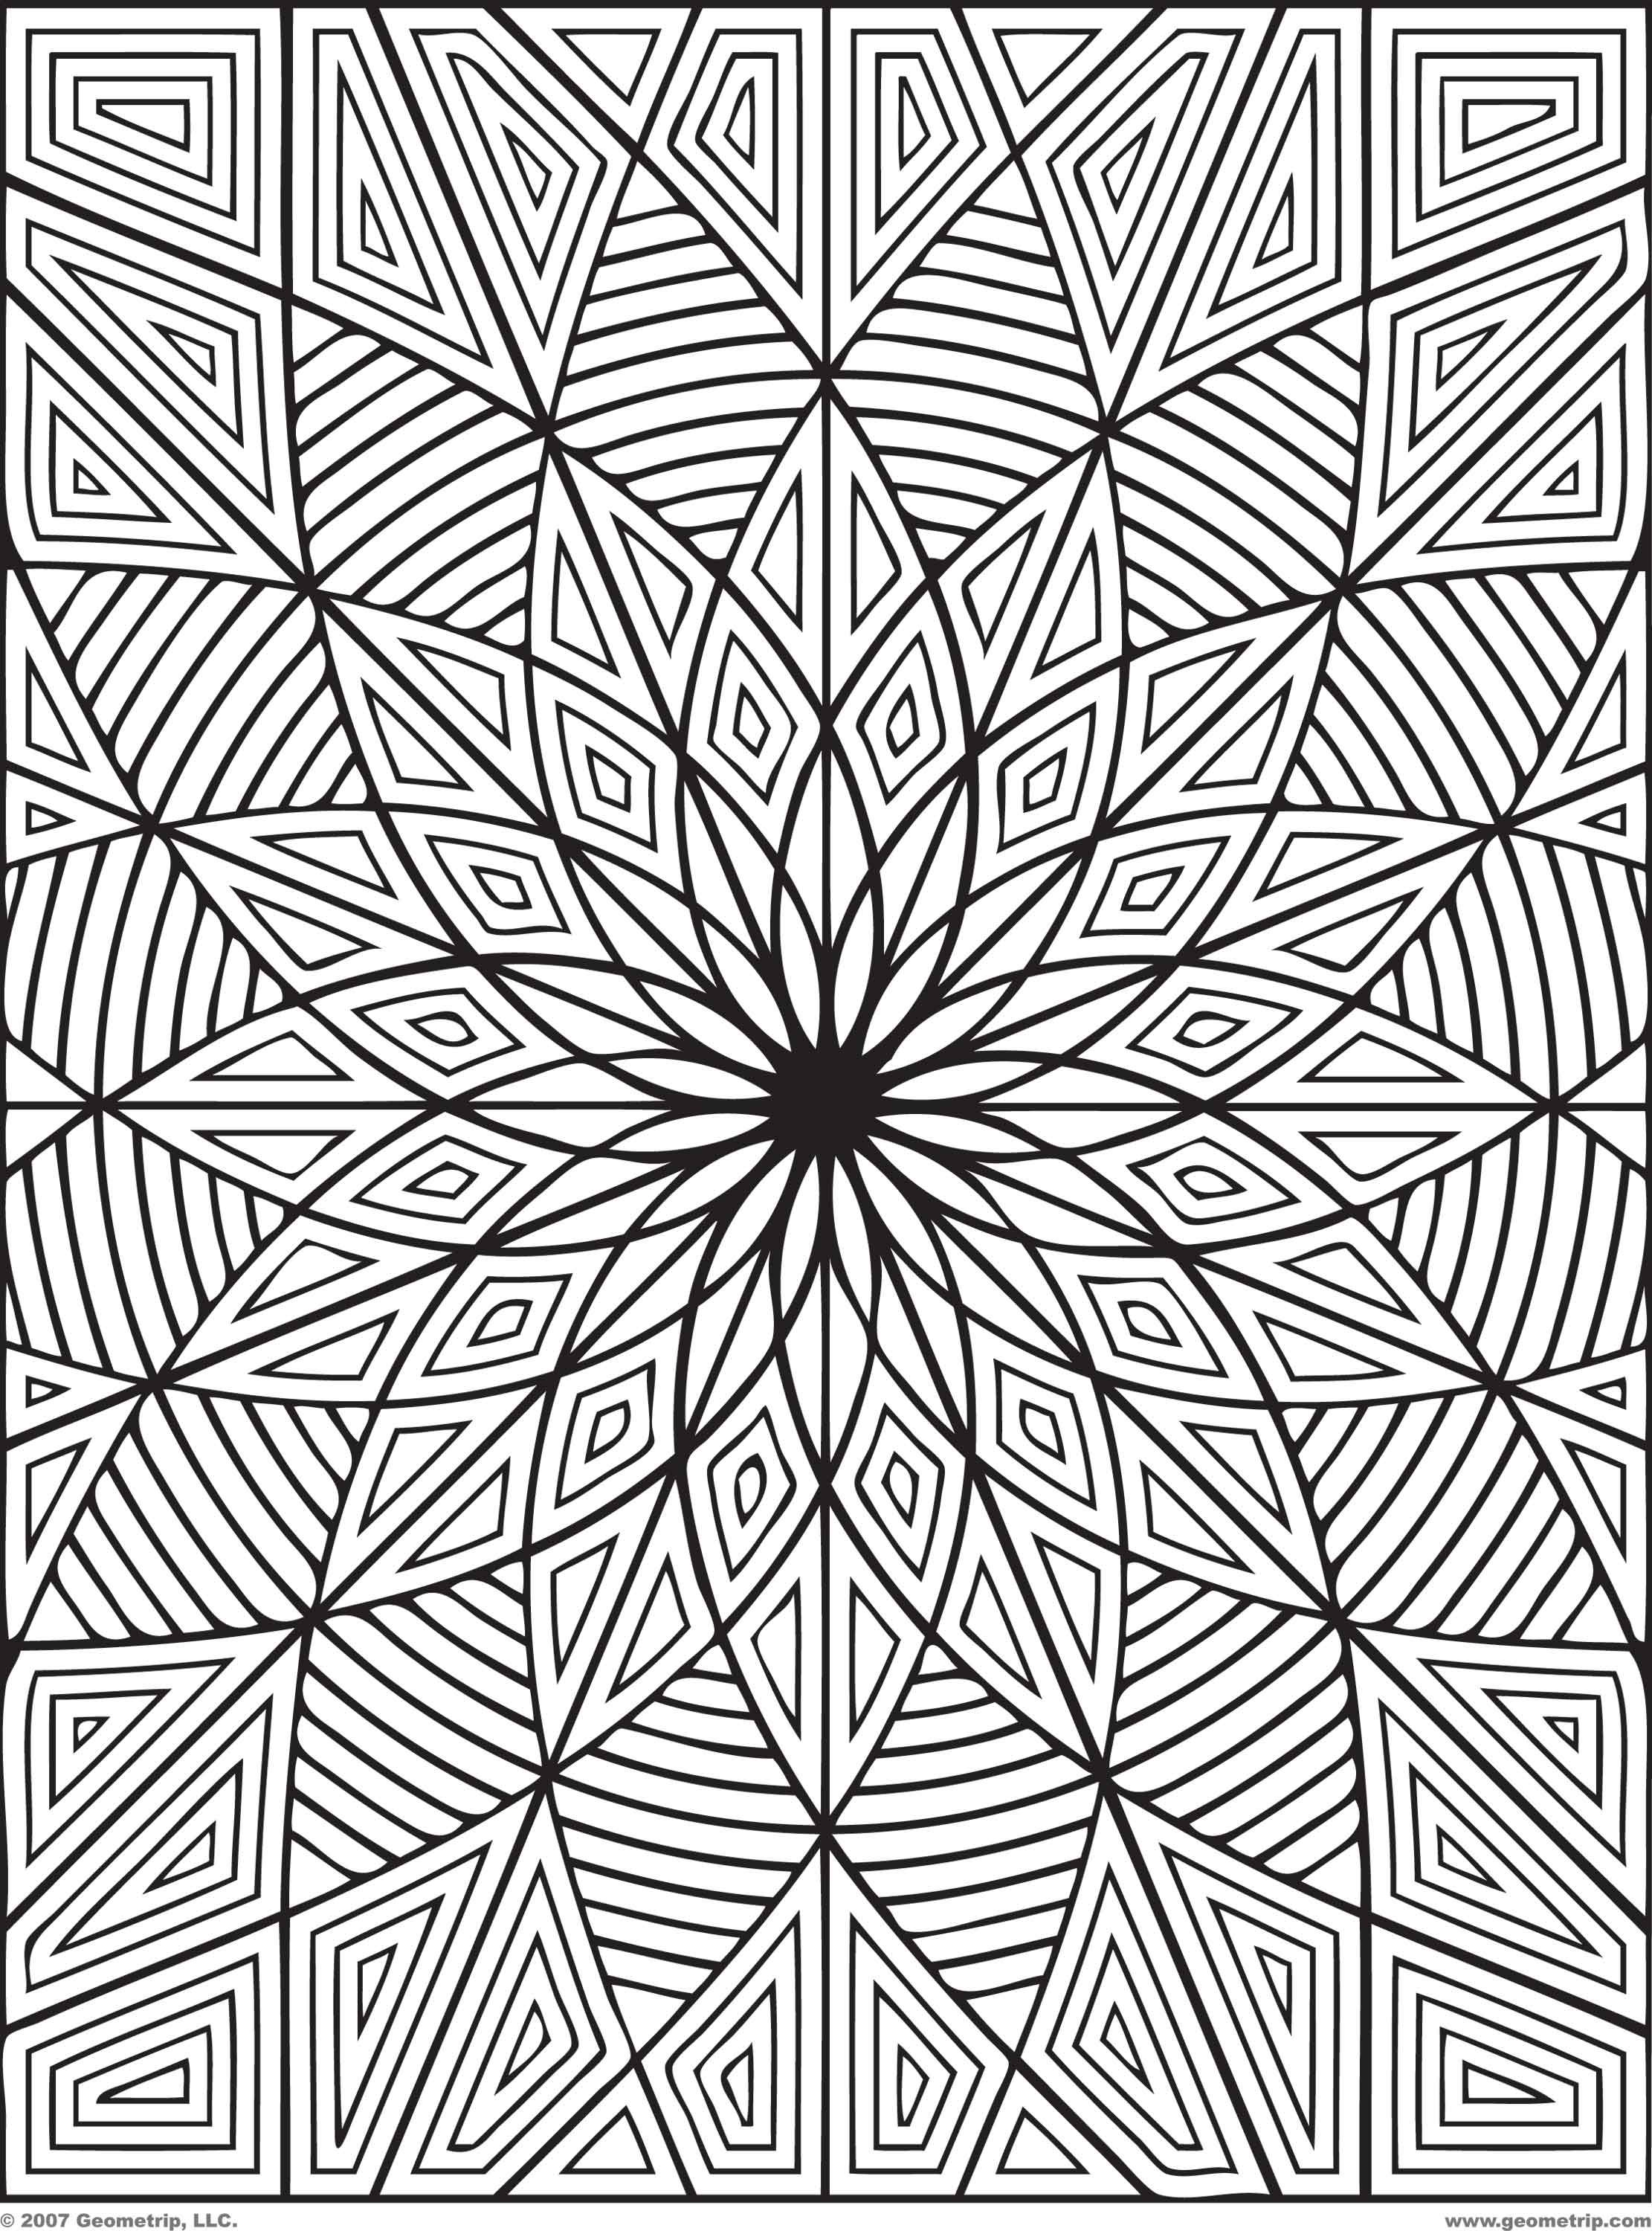 Uncategorized Free Coloring Pages Designs difficult geometric design coloring pages rectangles page 1 of 2